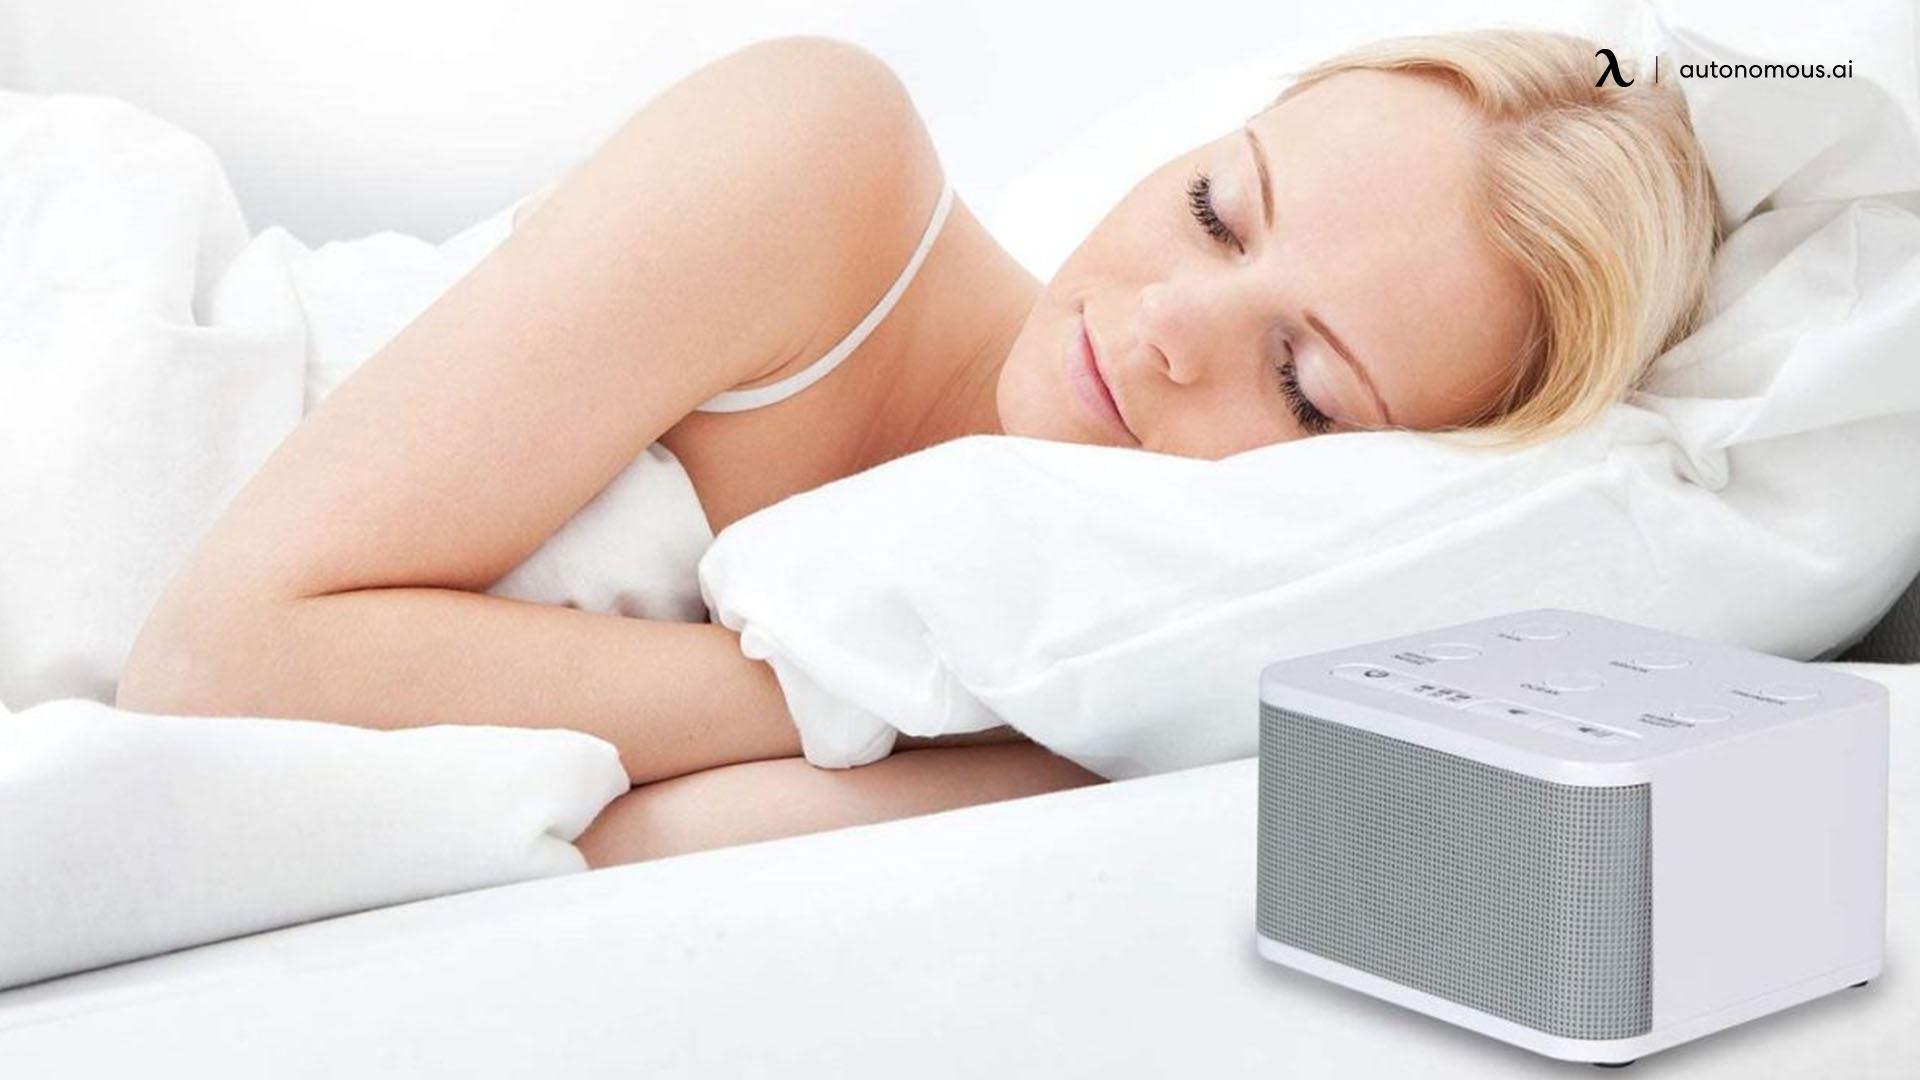 How to Sleep Less and Work More with 12 Effective Tips